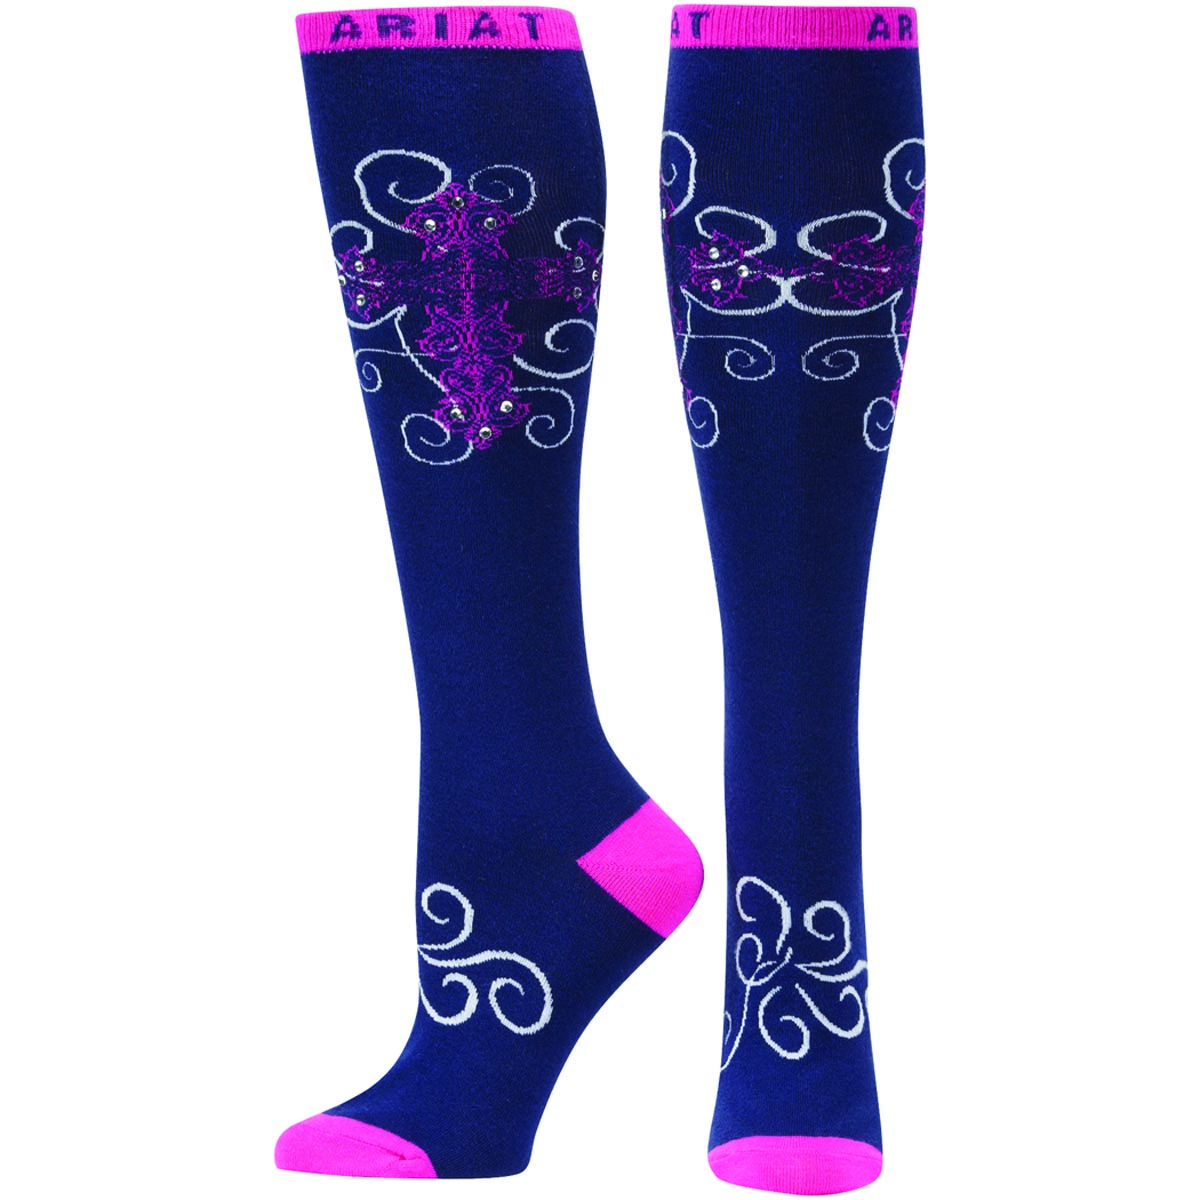 ARIAT Women's Presley Knee Sock